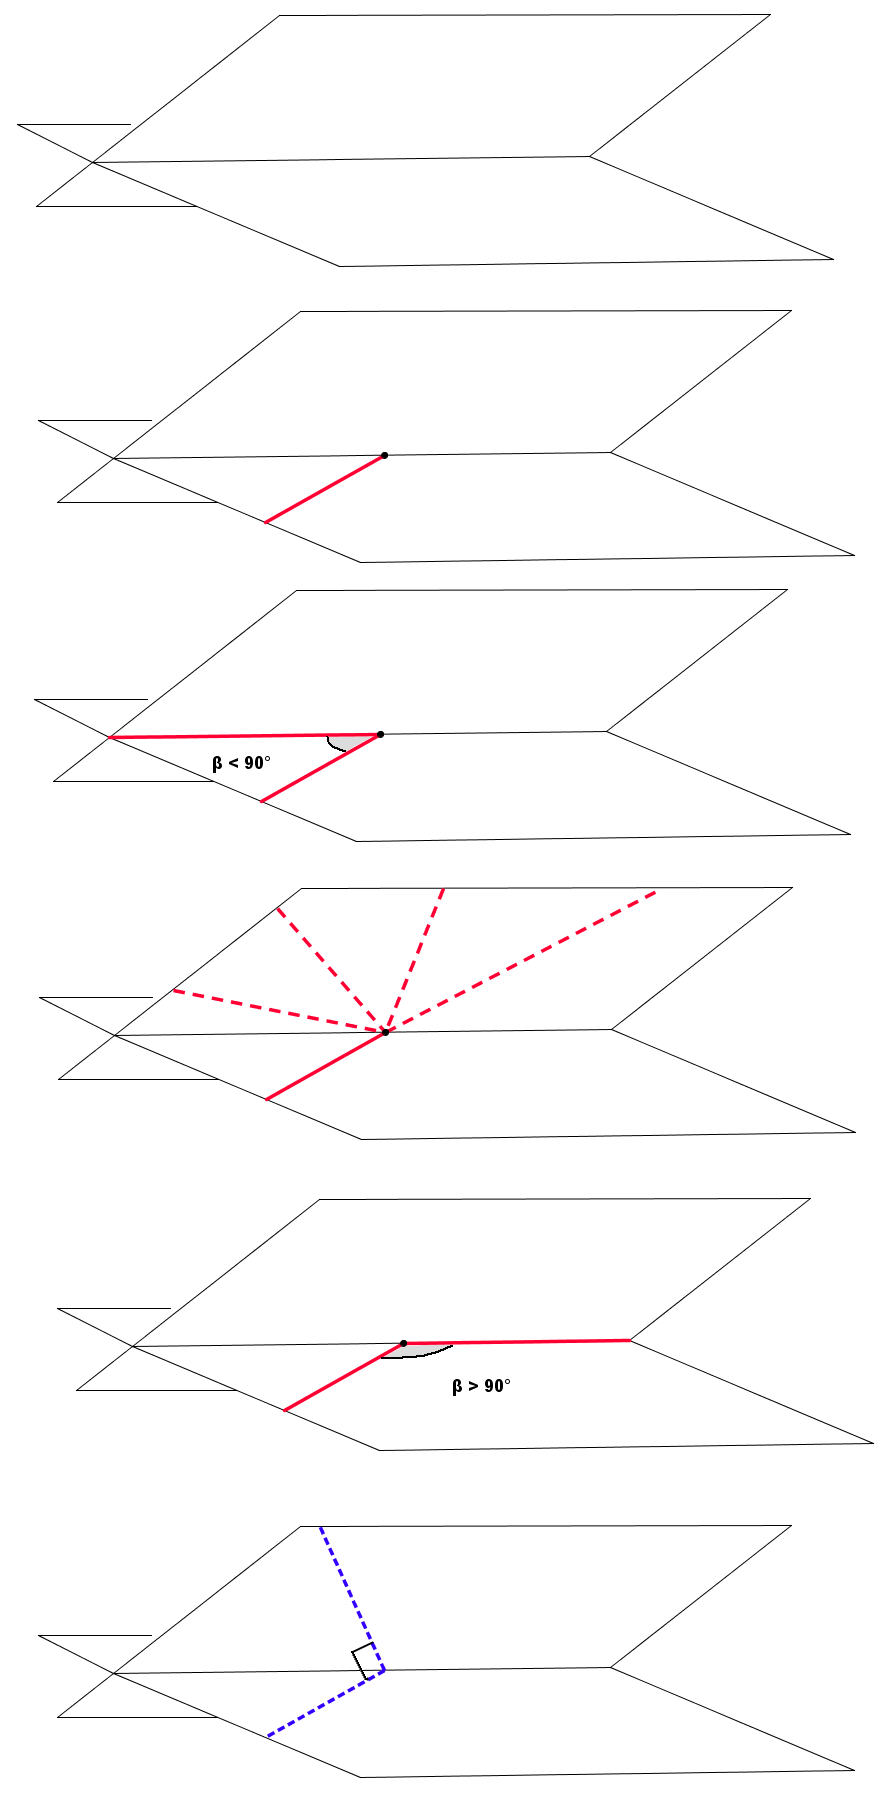 Proof Without Words — Intersecting Planes Always Contain